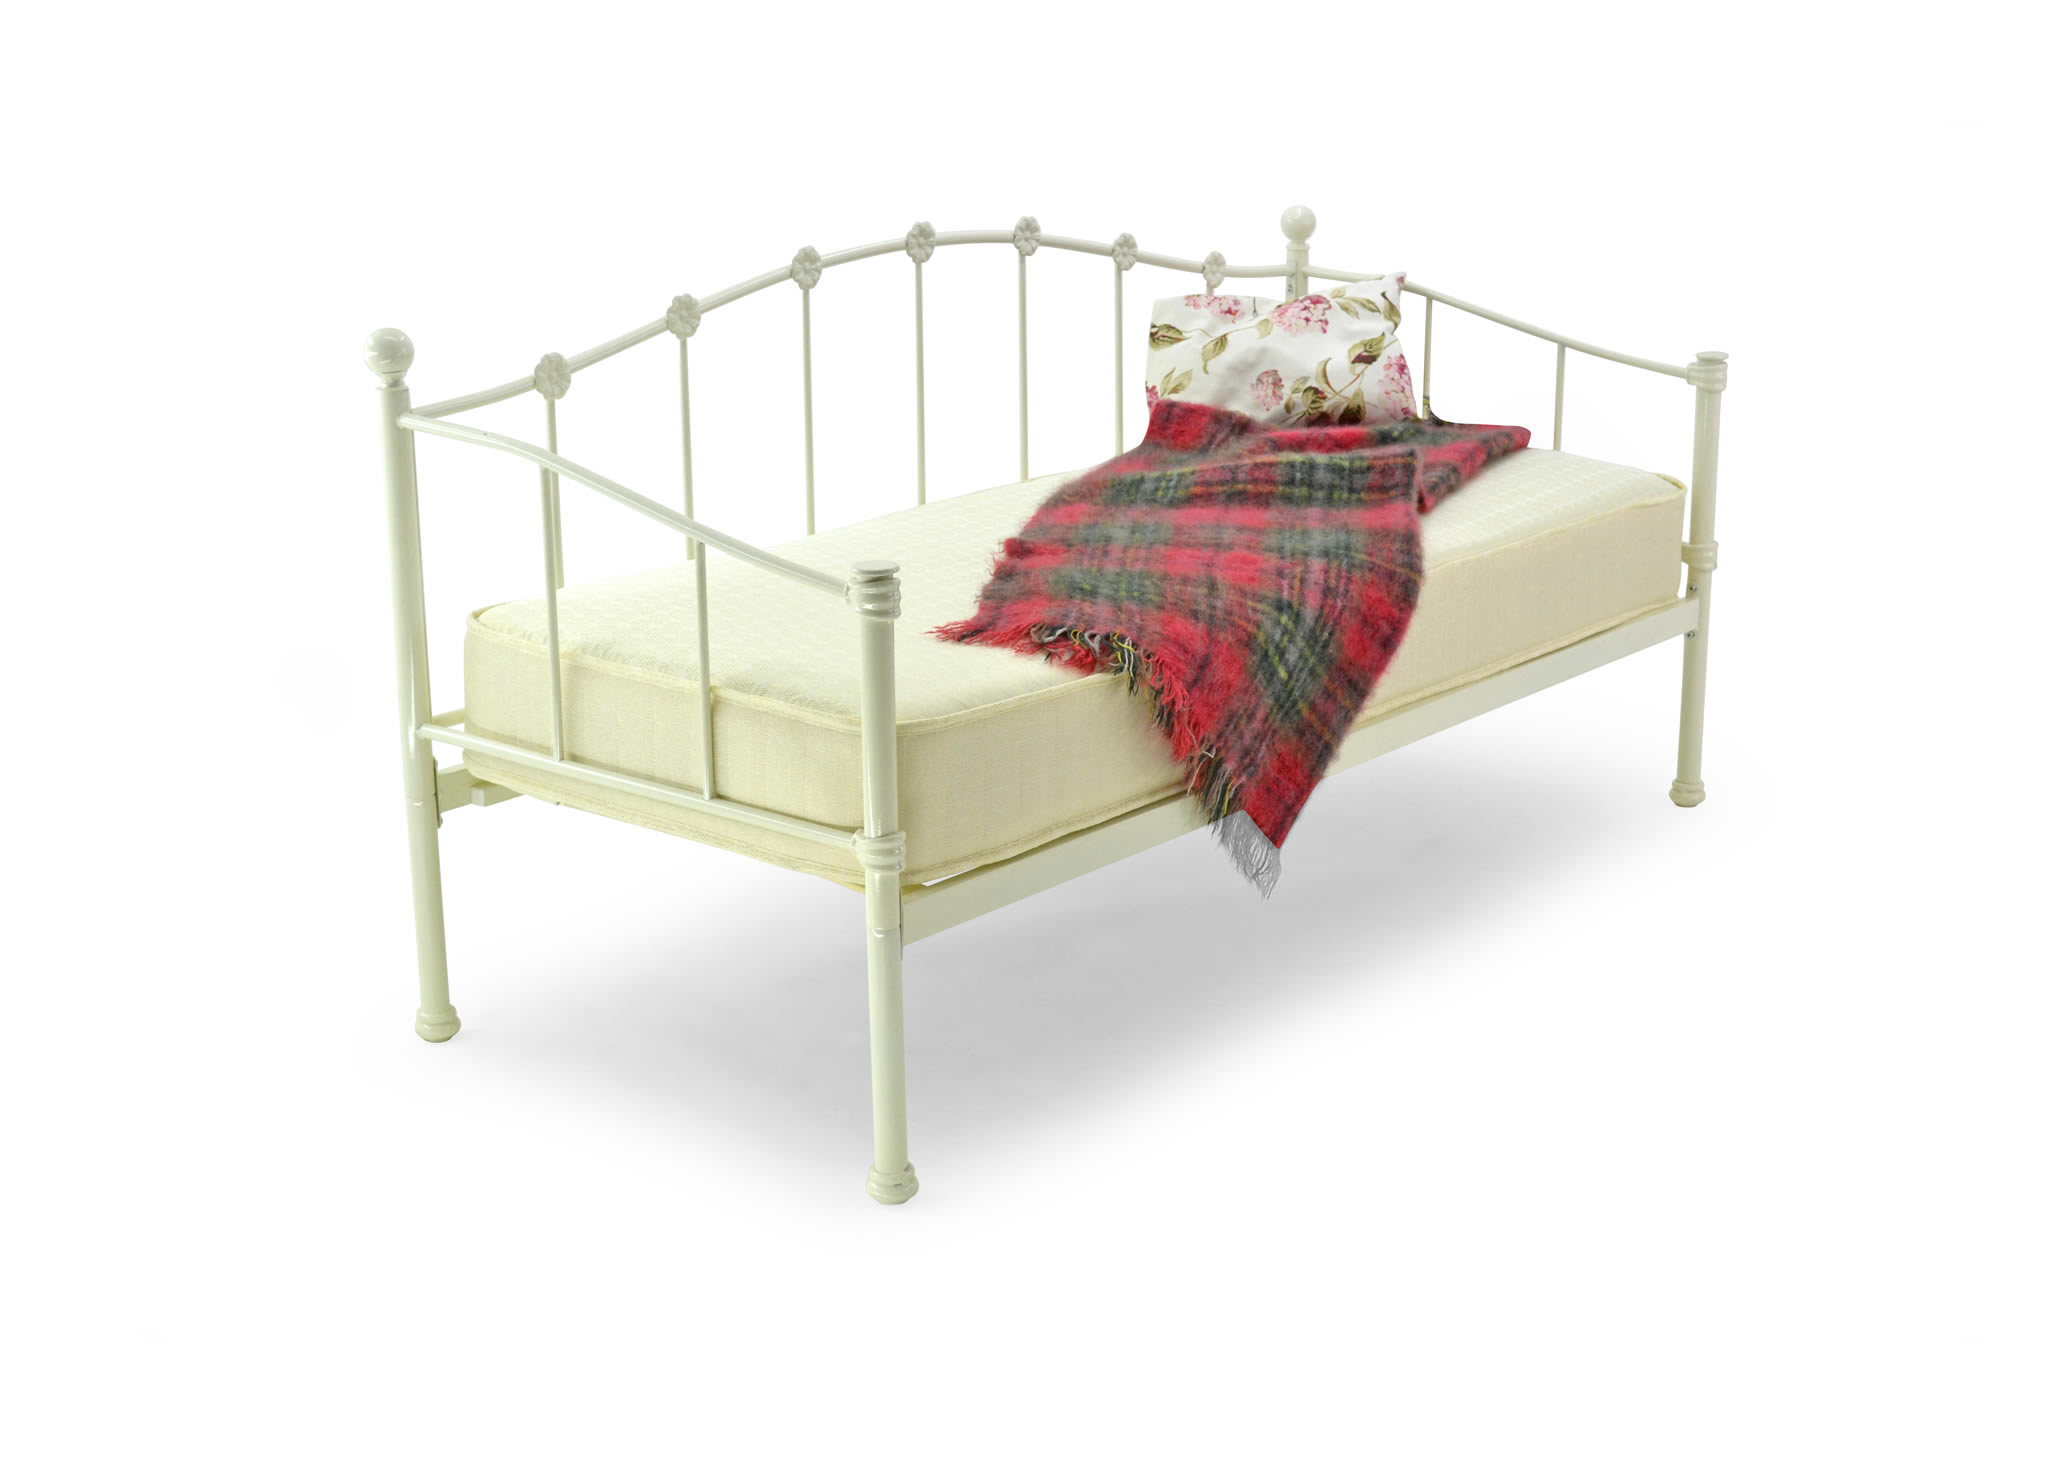 PAR_Wholesale_Beds_Suppliers